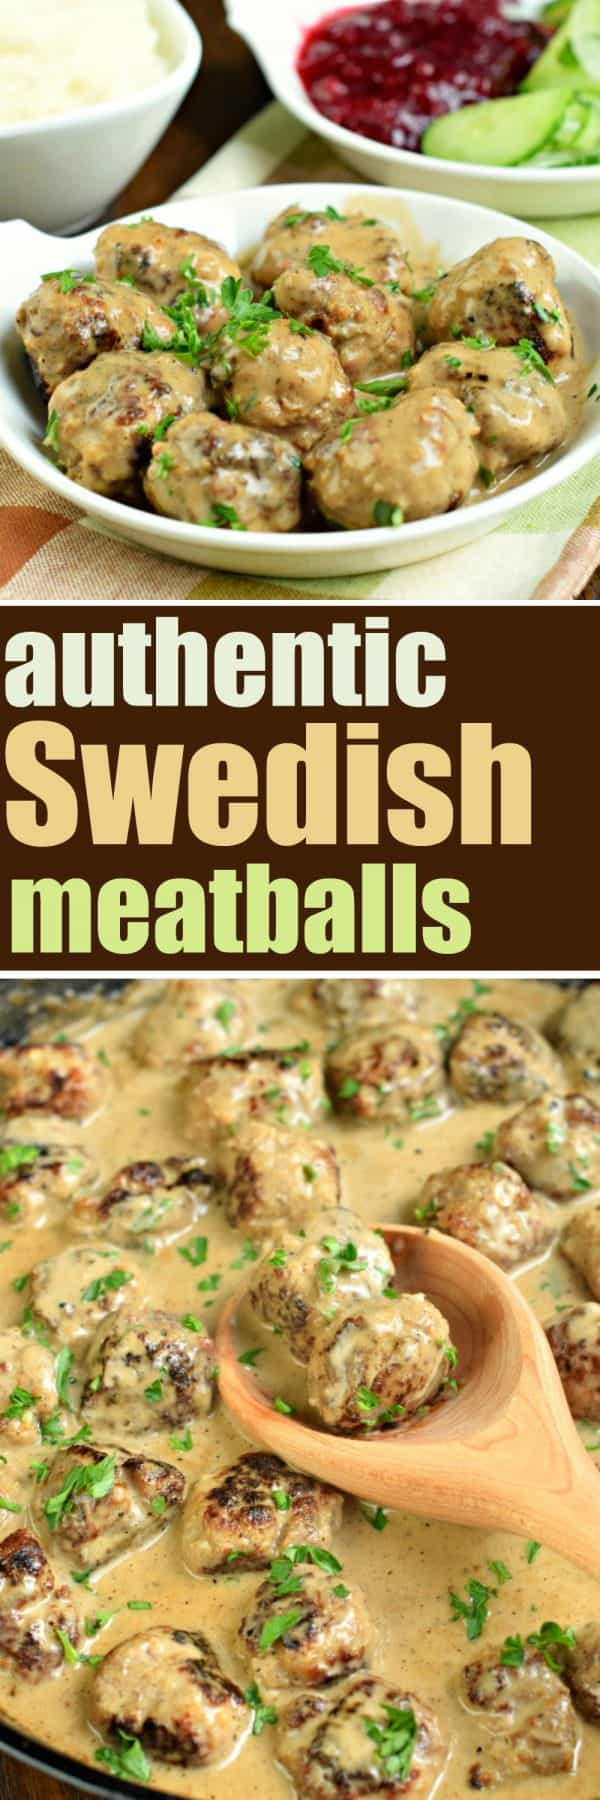 This Authentic Swedish Meatballs recipe is delicious enough for a weeknight meal, and impressive enough for guests! You'll love the creamy sauce and the sides of cucumbers and lingonberries!